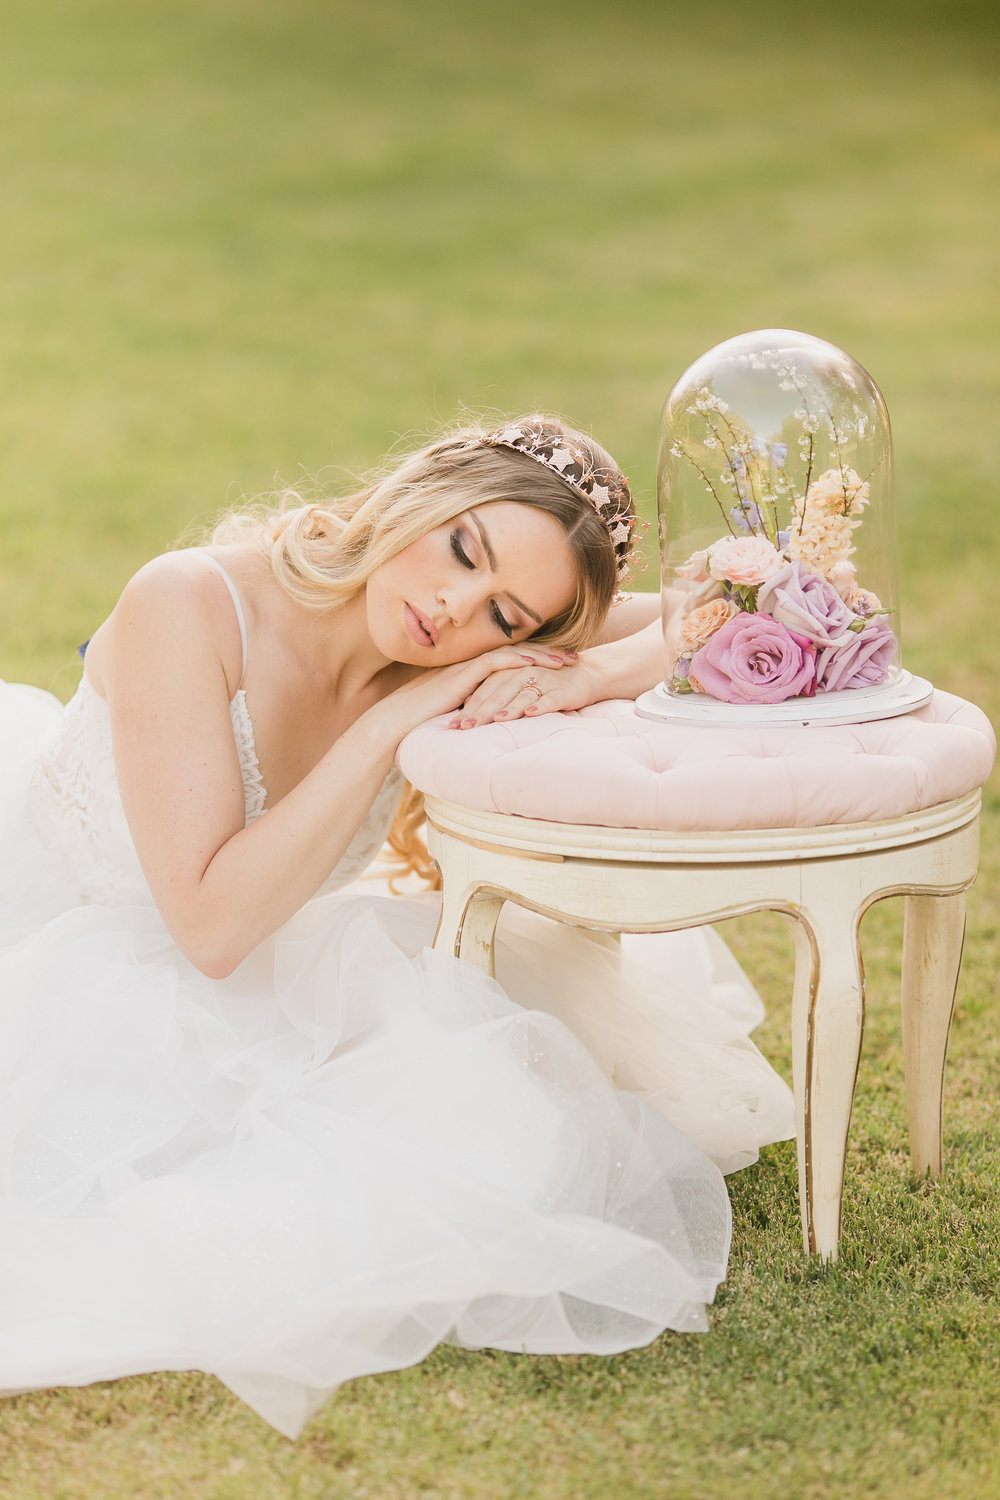 Star-Crown-Rose-Gold-Unicorn-Styled-Shoot-with-Pastel-Colors-and-Magical-Details